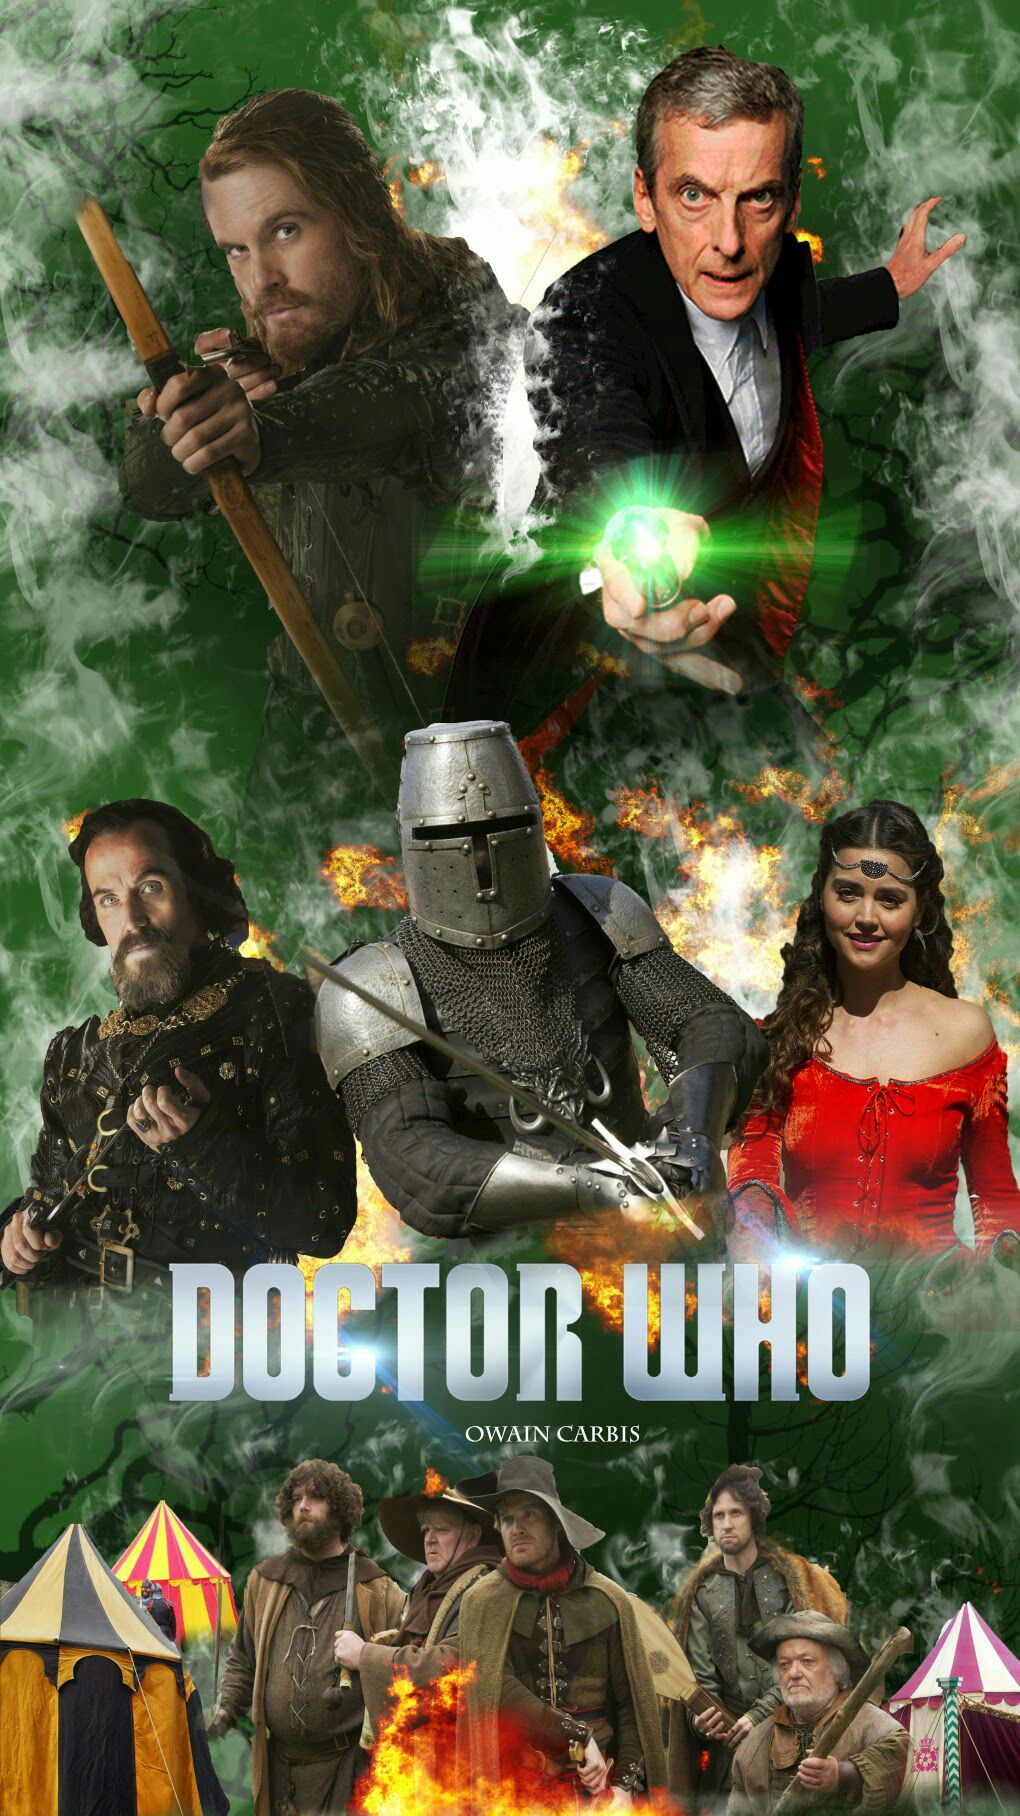 The Dr Who - Magazine cover